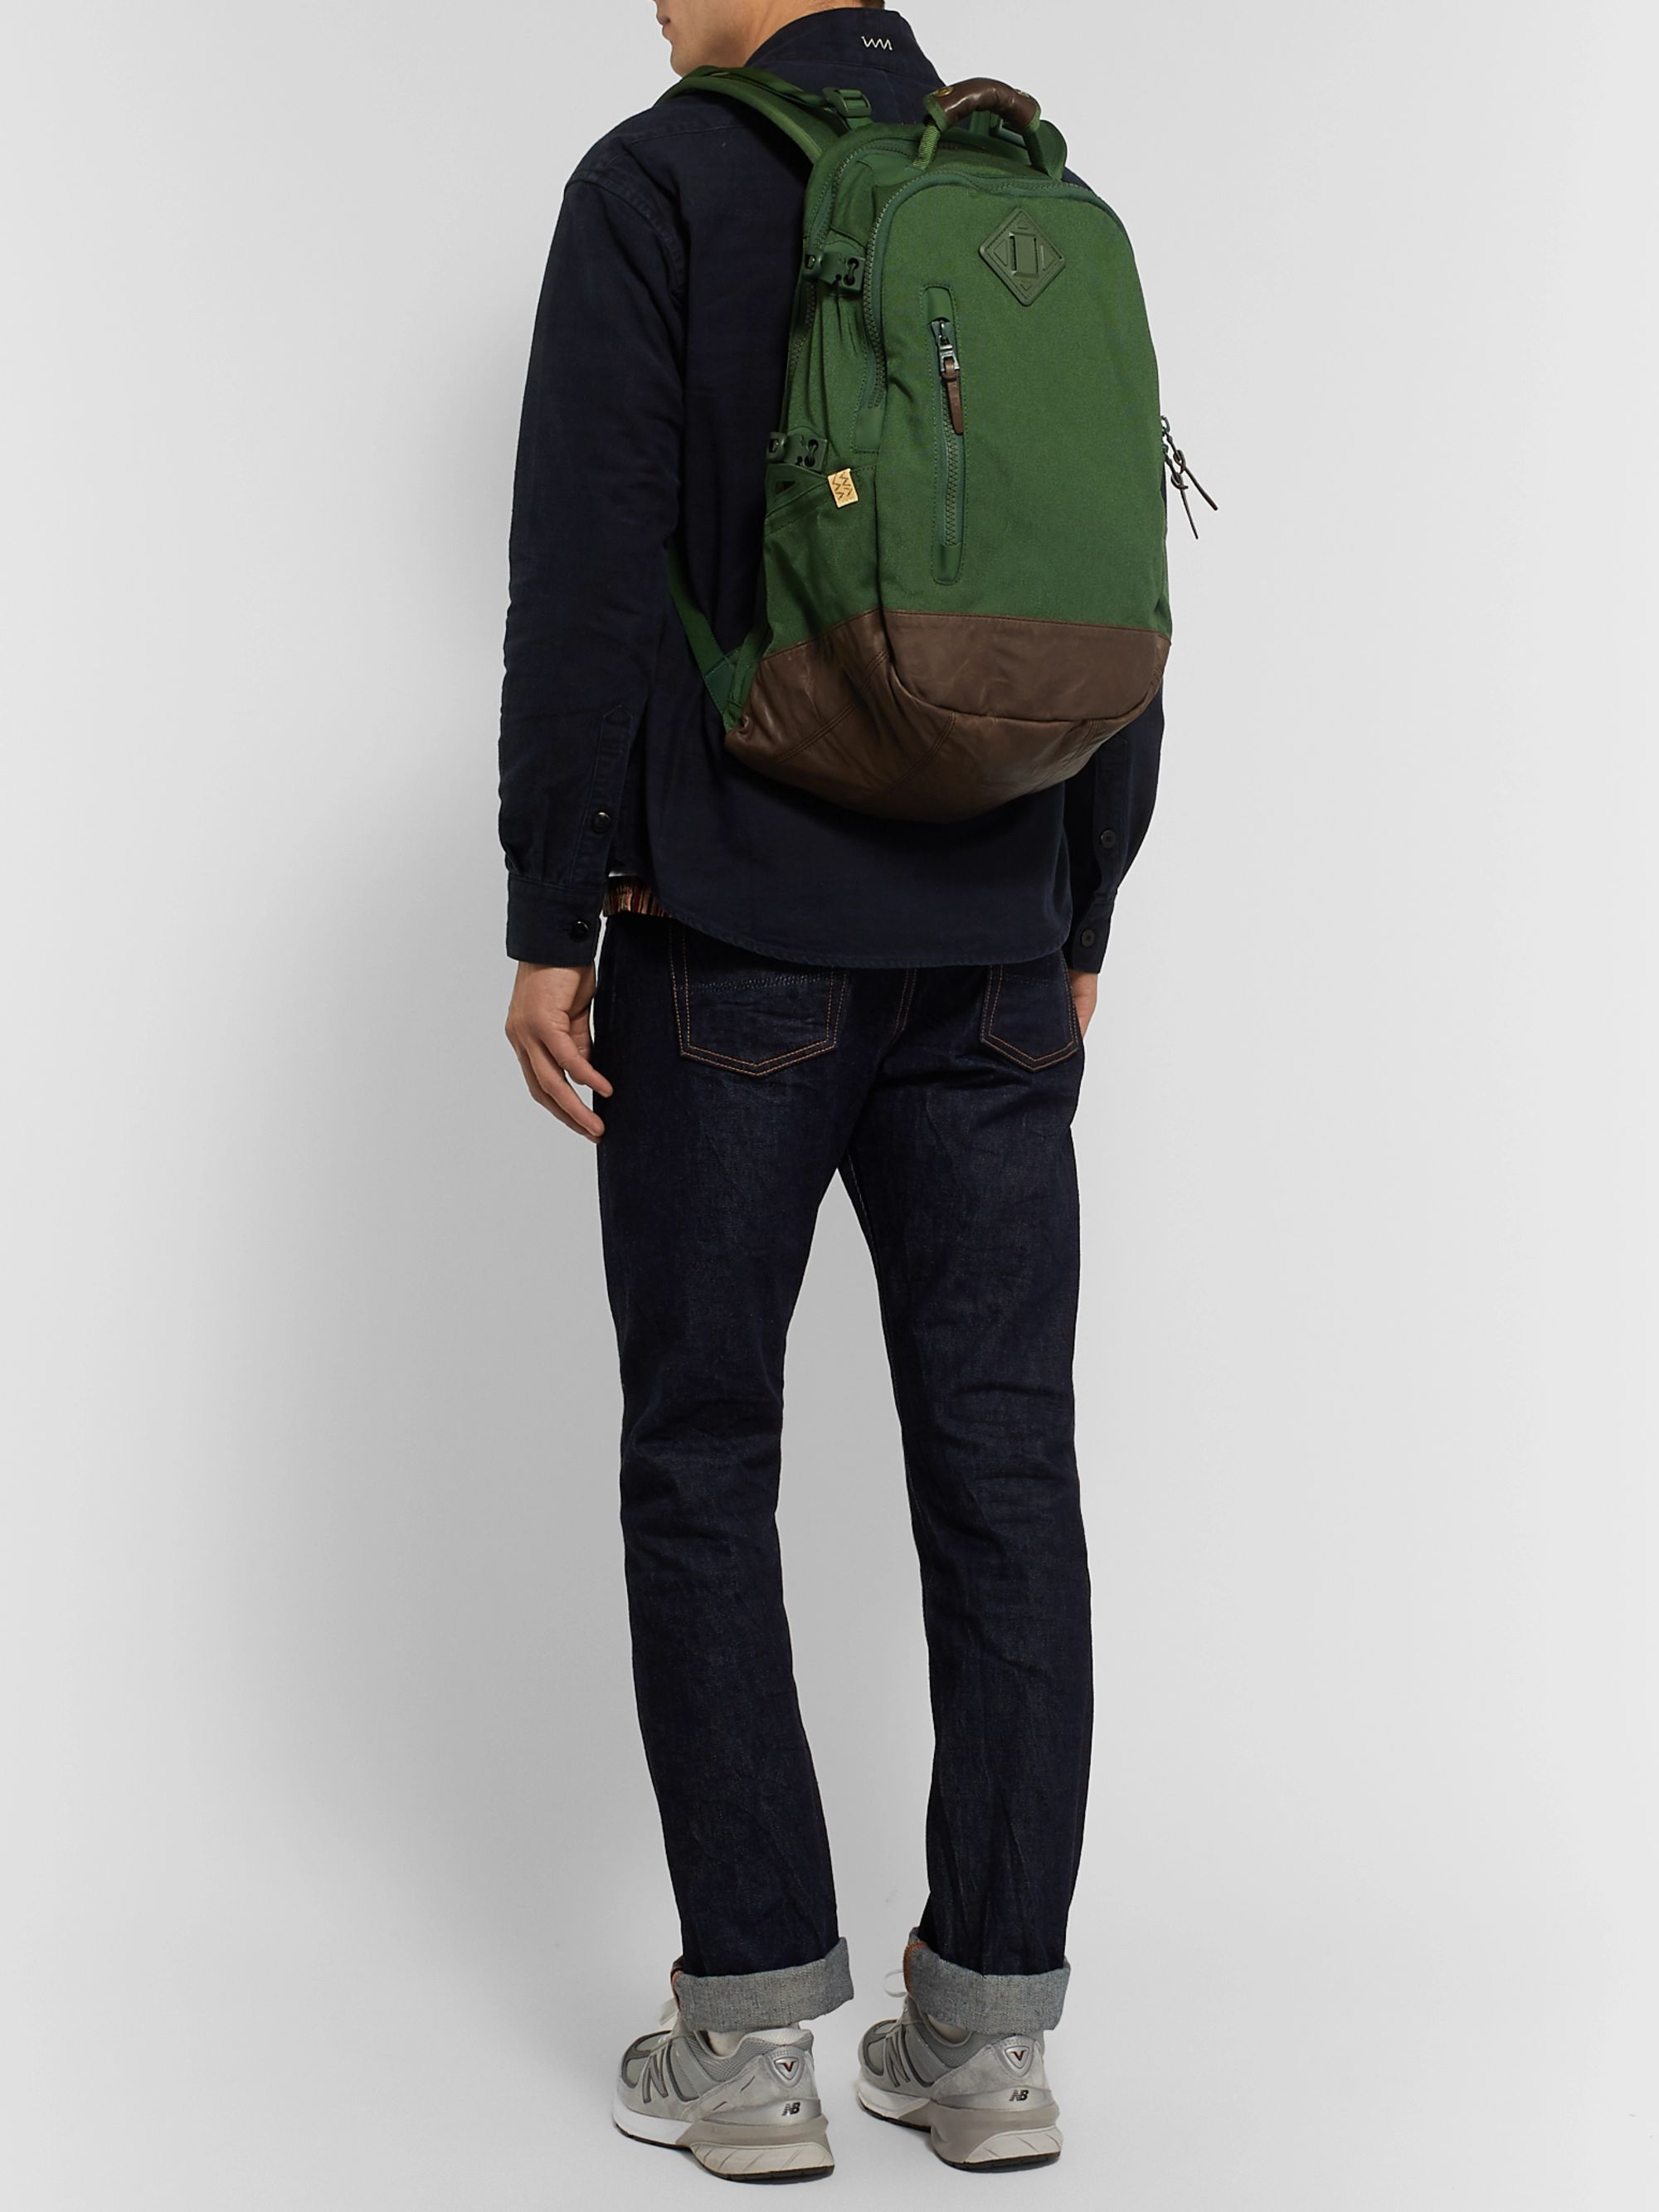 visvim CORDURA and Faux Leather Backpack